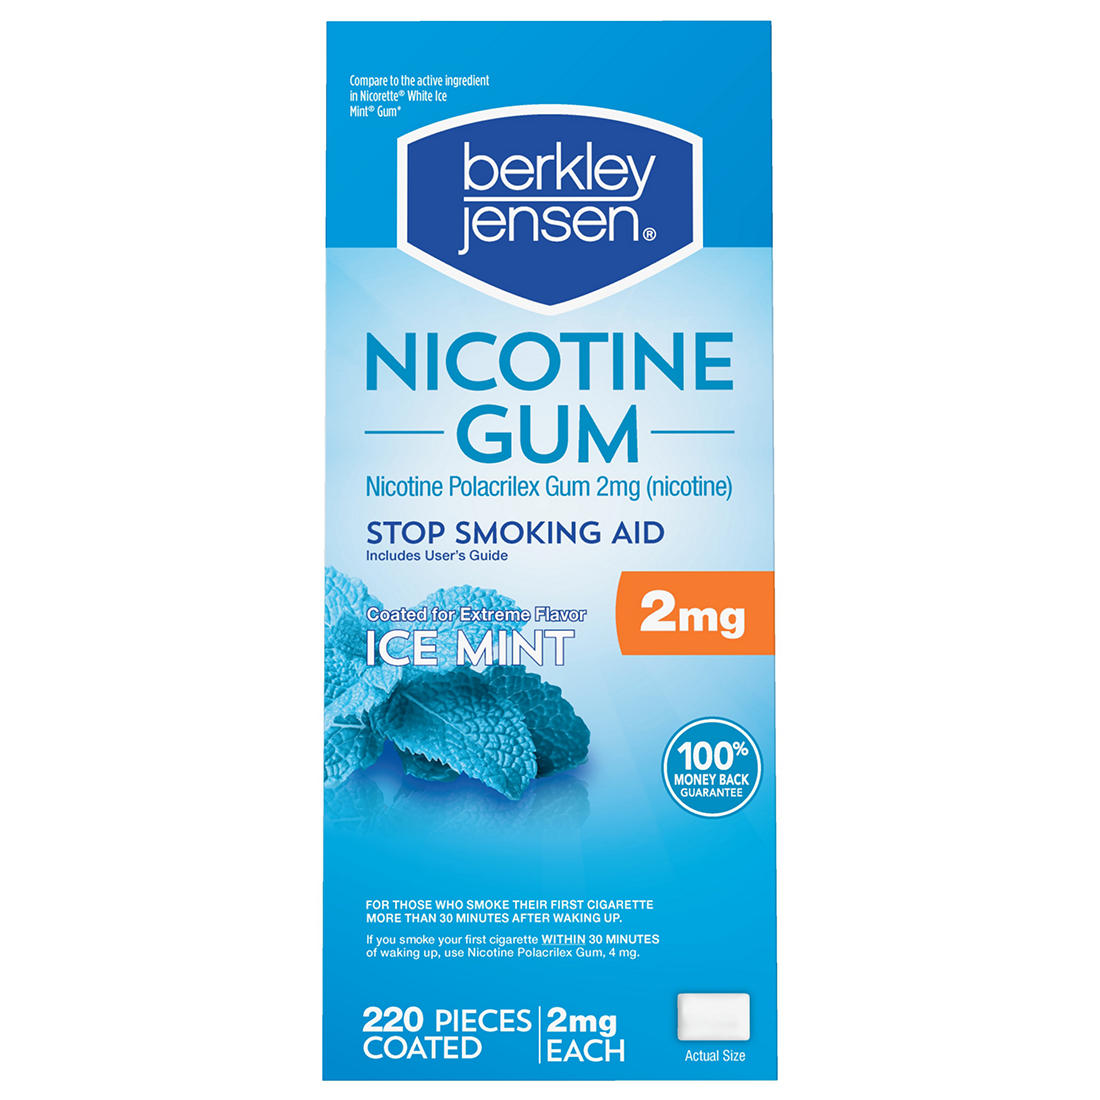 Berkley Jensen 2mg Ice Mint Coated Nicotine Gum, 220 ct